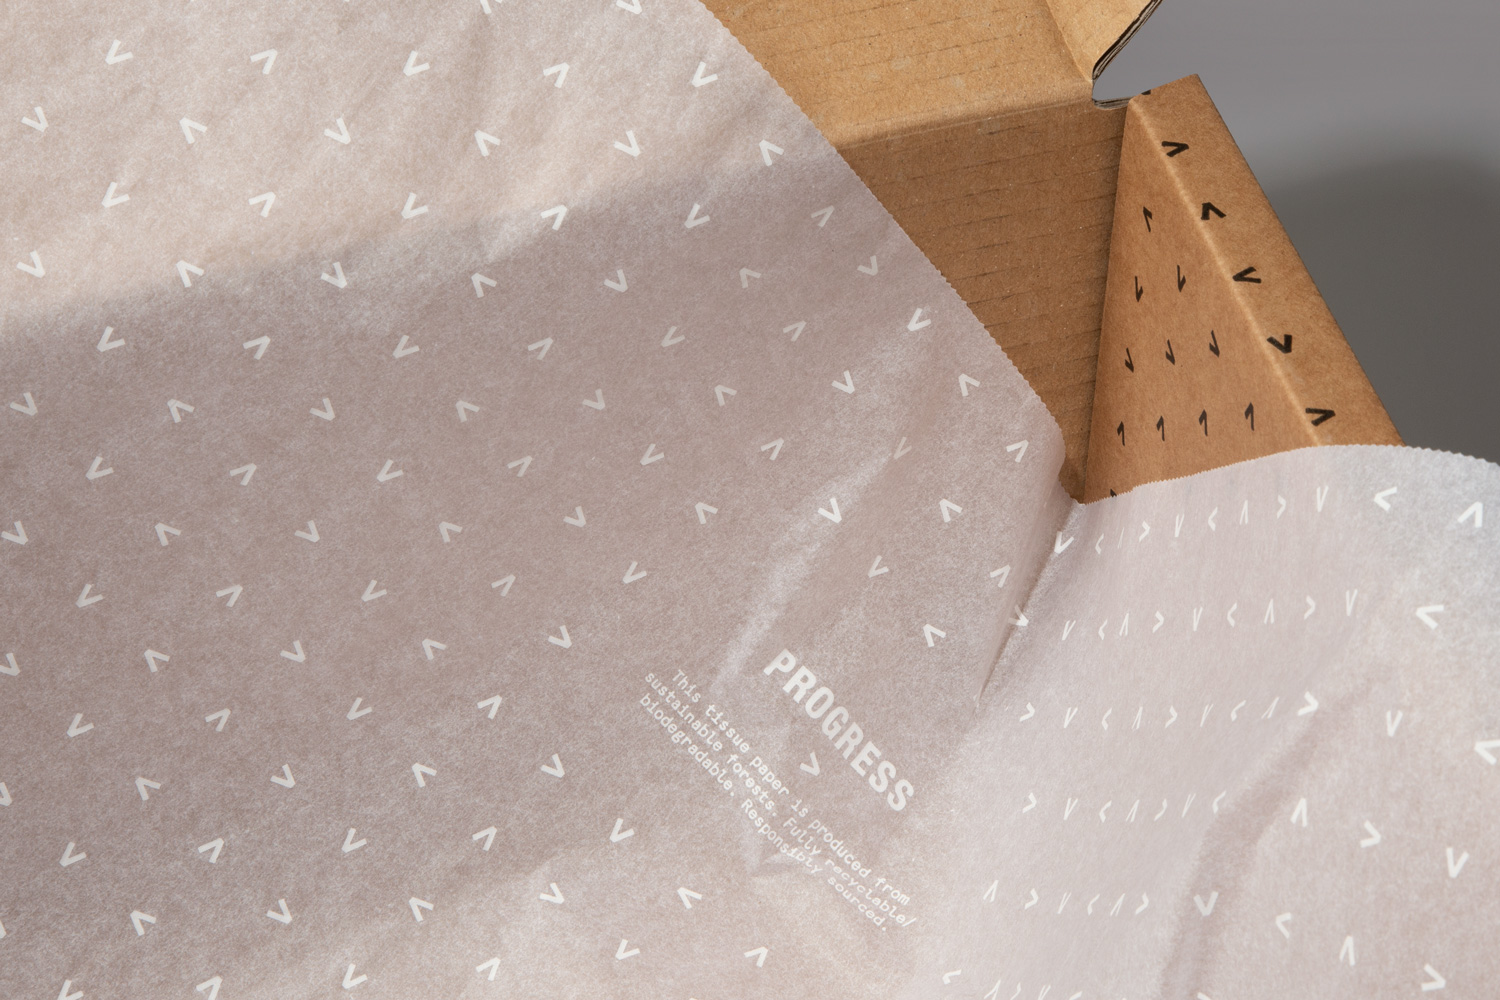 Progress Packaging Packing Tissue Recyclable Box Paper Protective Branded Eco Friendly Printed Retail Shipping E Commerce Durable Custom Made Bespoke Carton 1